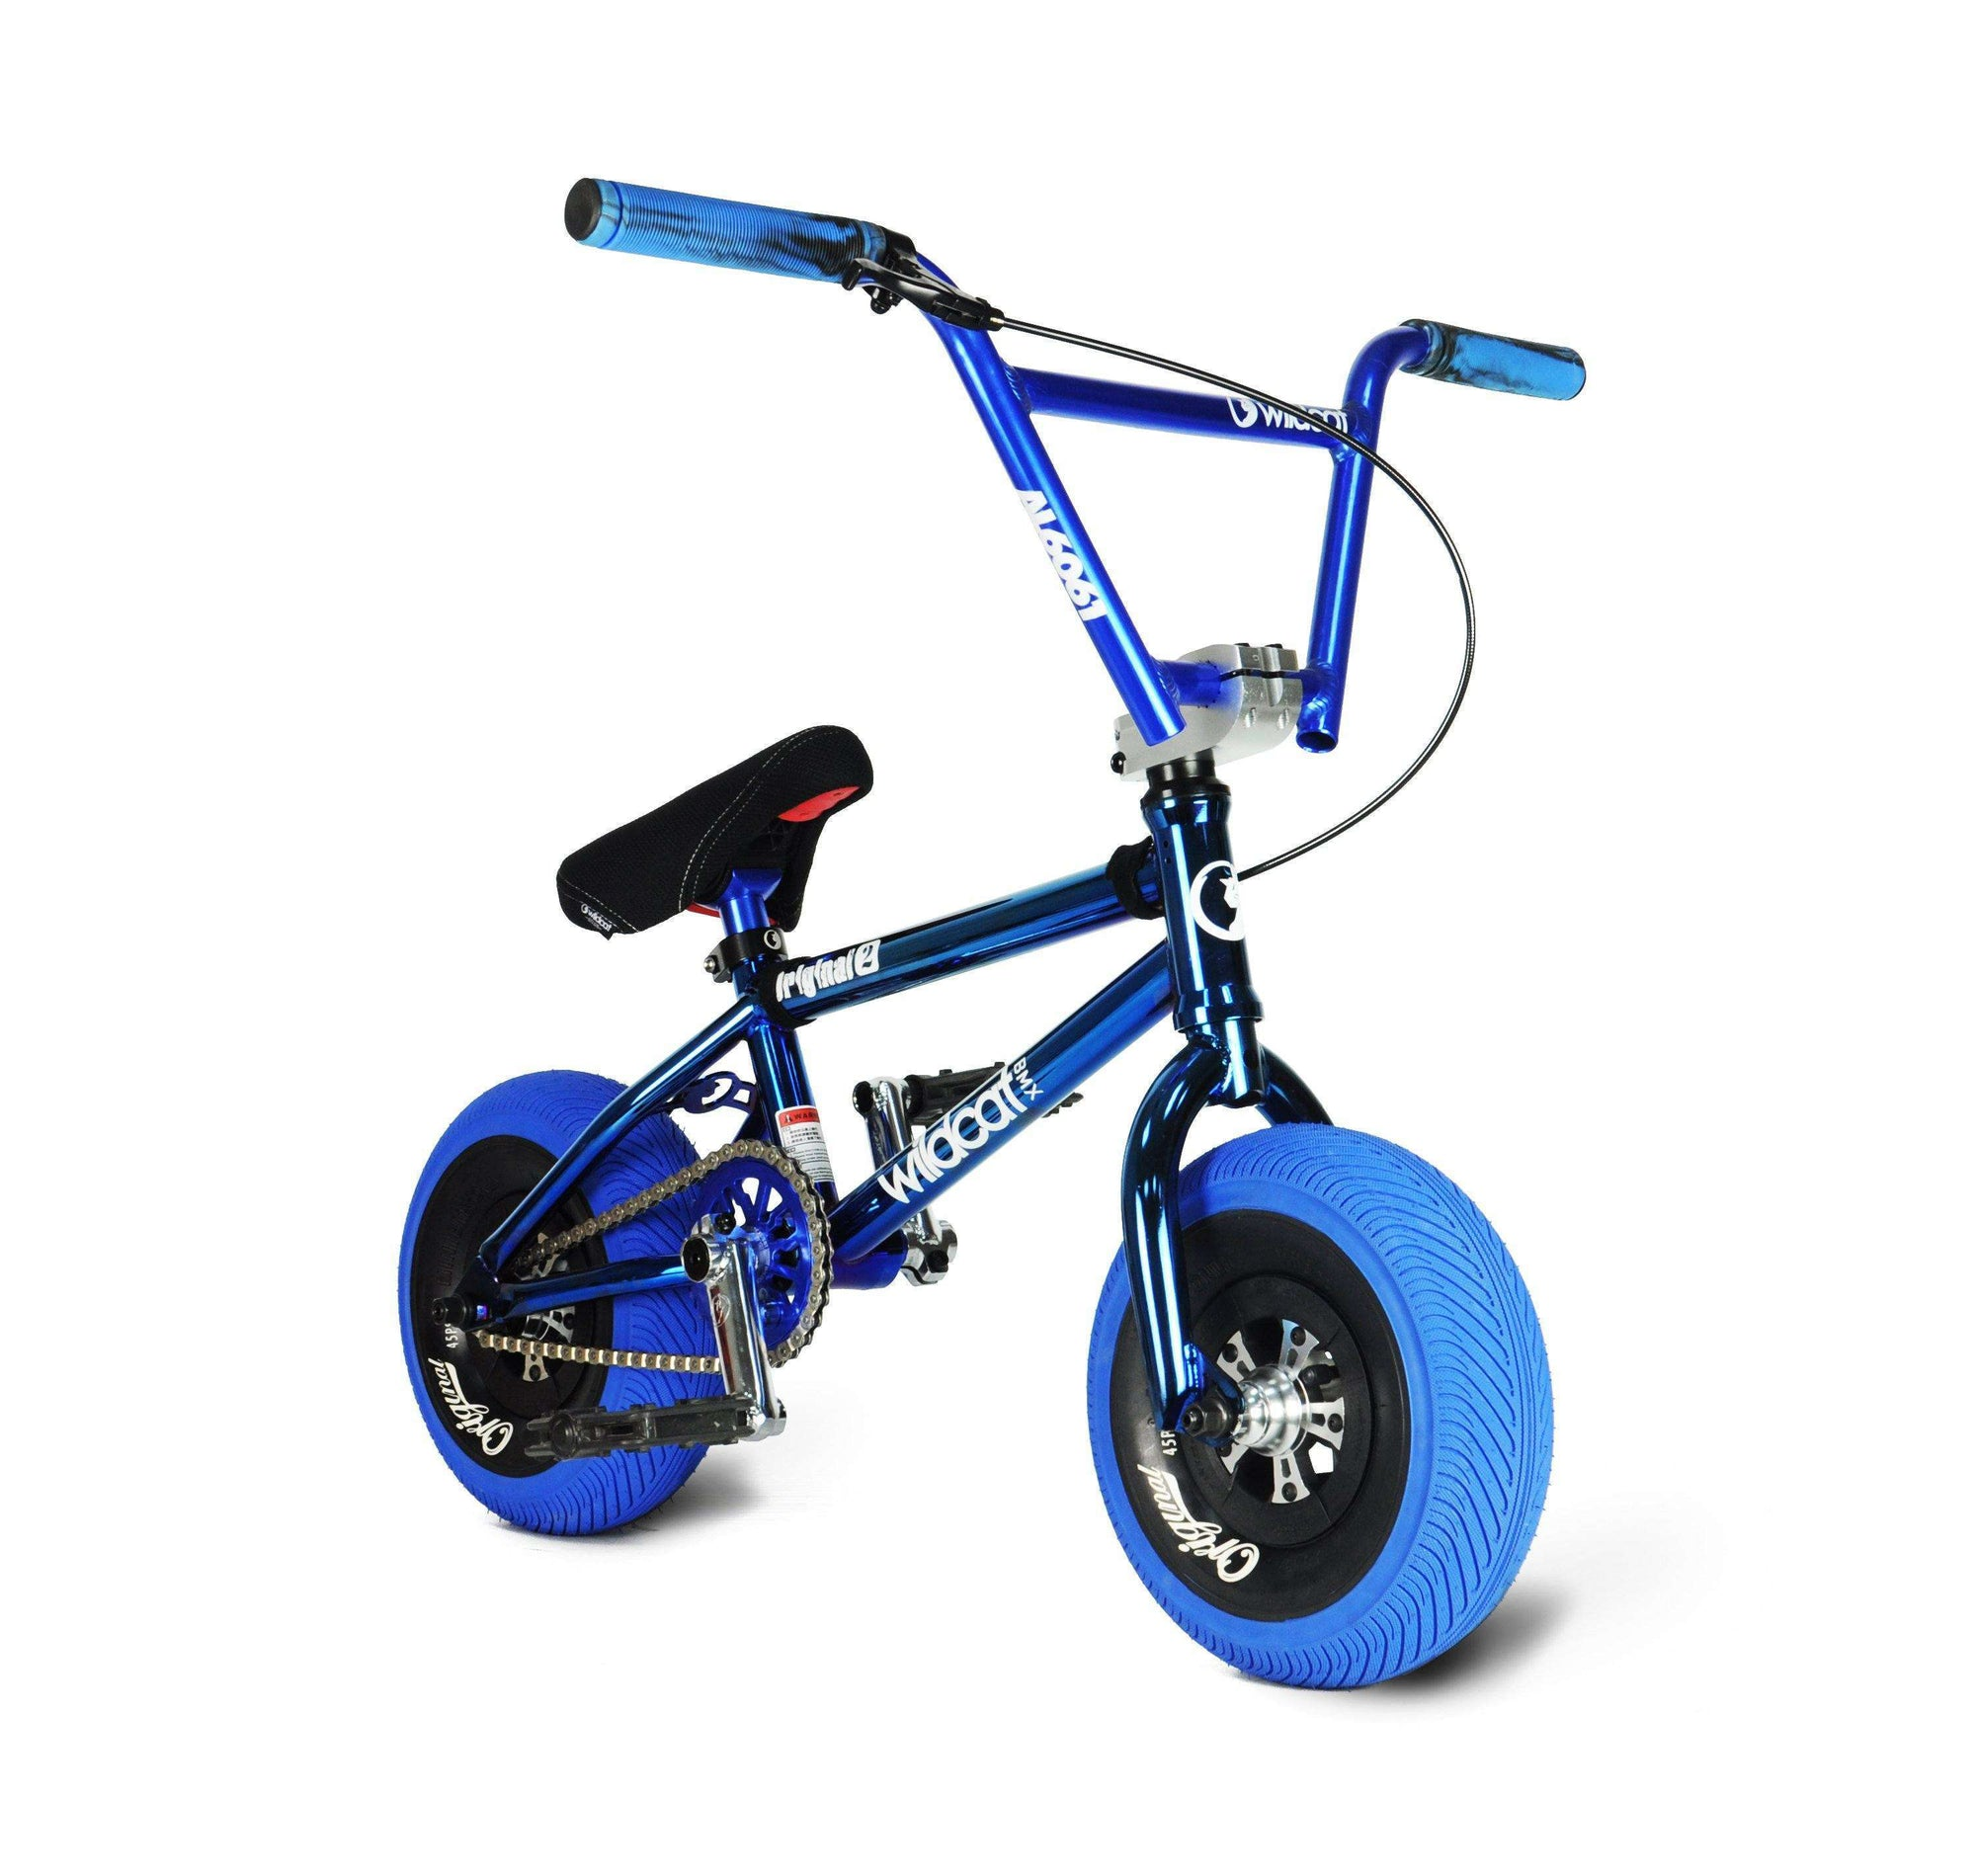 Pro Series Joker Blue - FREE Disc Brake & Pro Turbo Wheel Mini BMX Wildcat Mini BMX Disc Brakes